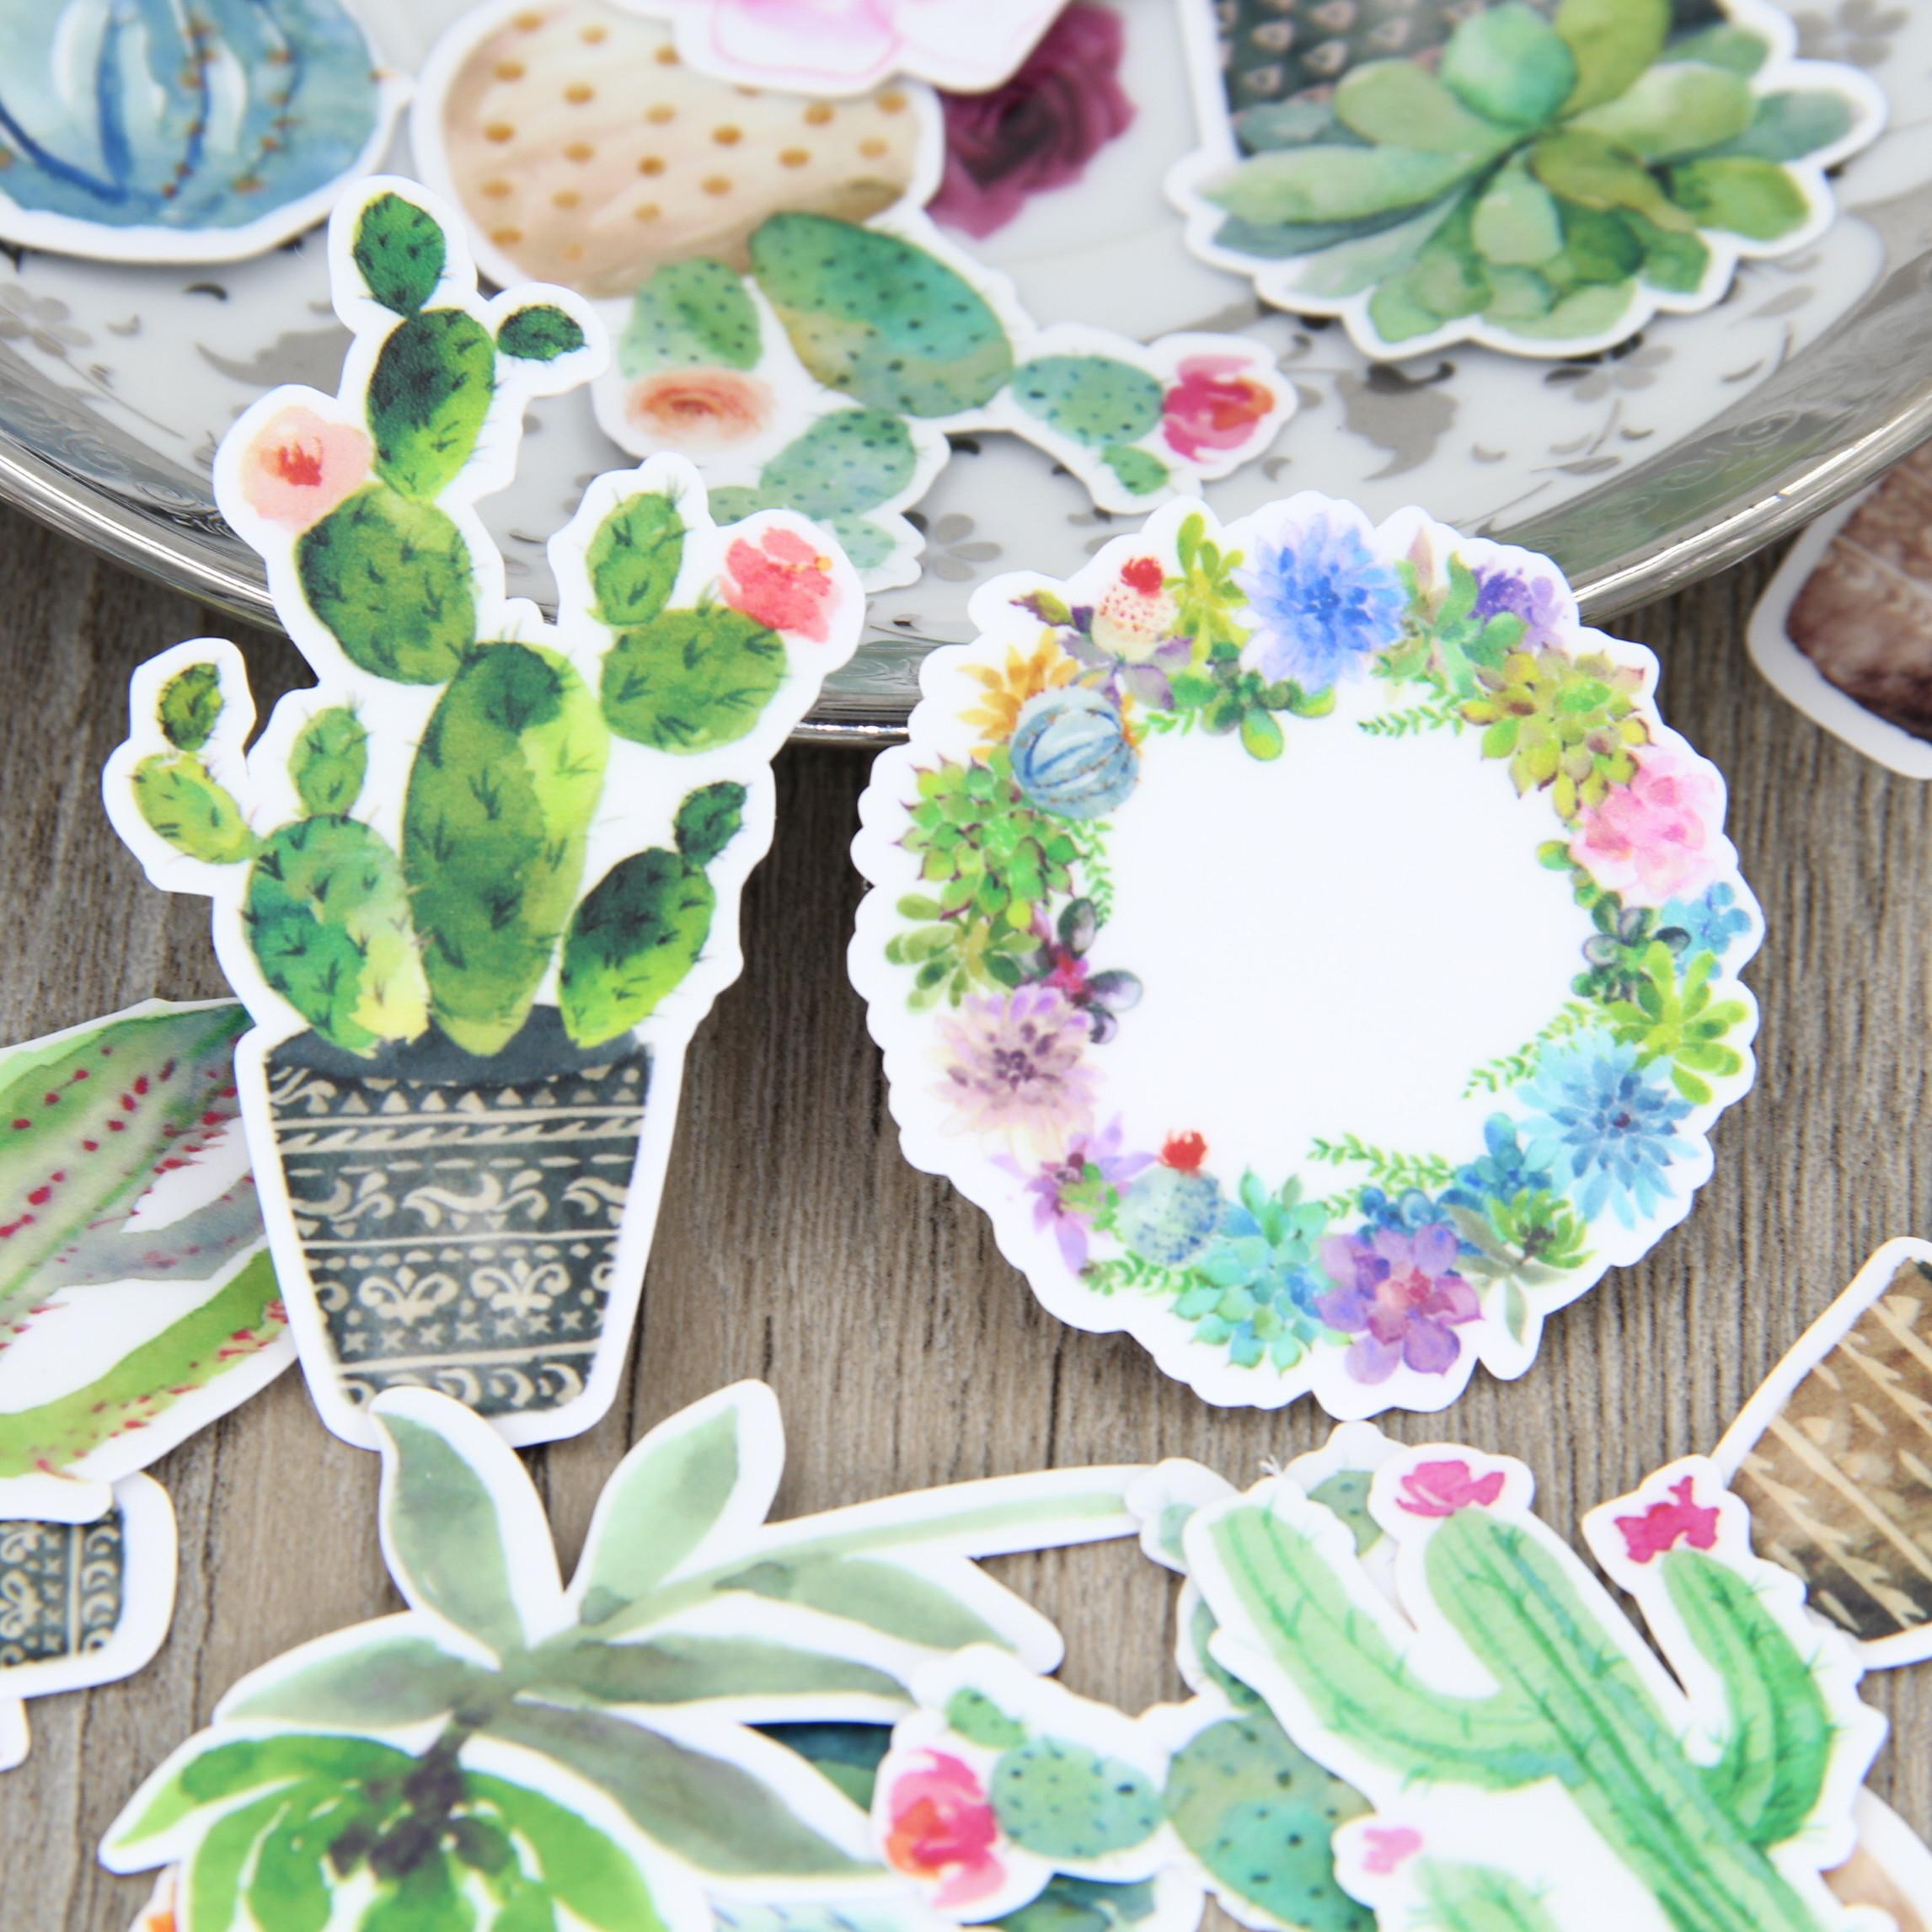 28pcs Drawing Tropical Cactus Plant Scrapbooking Stickers